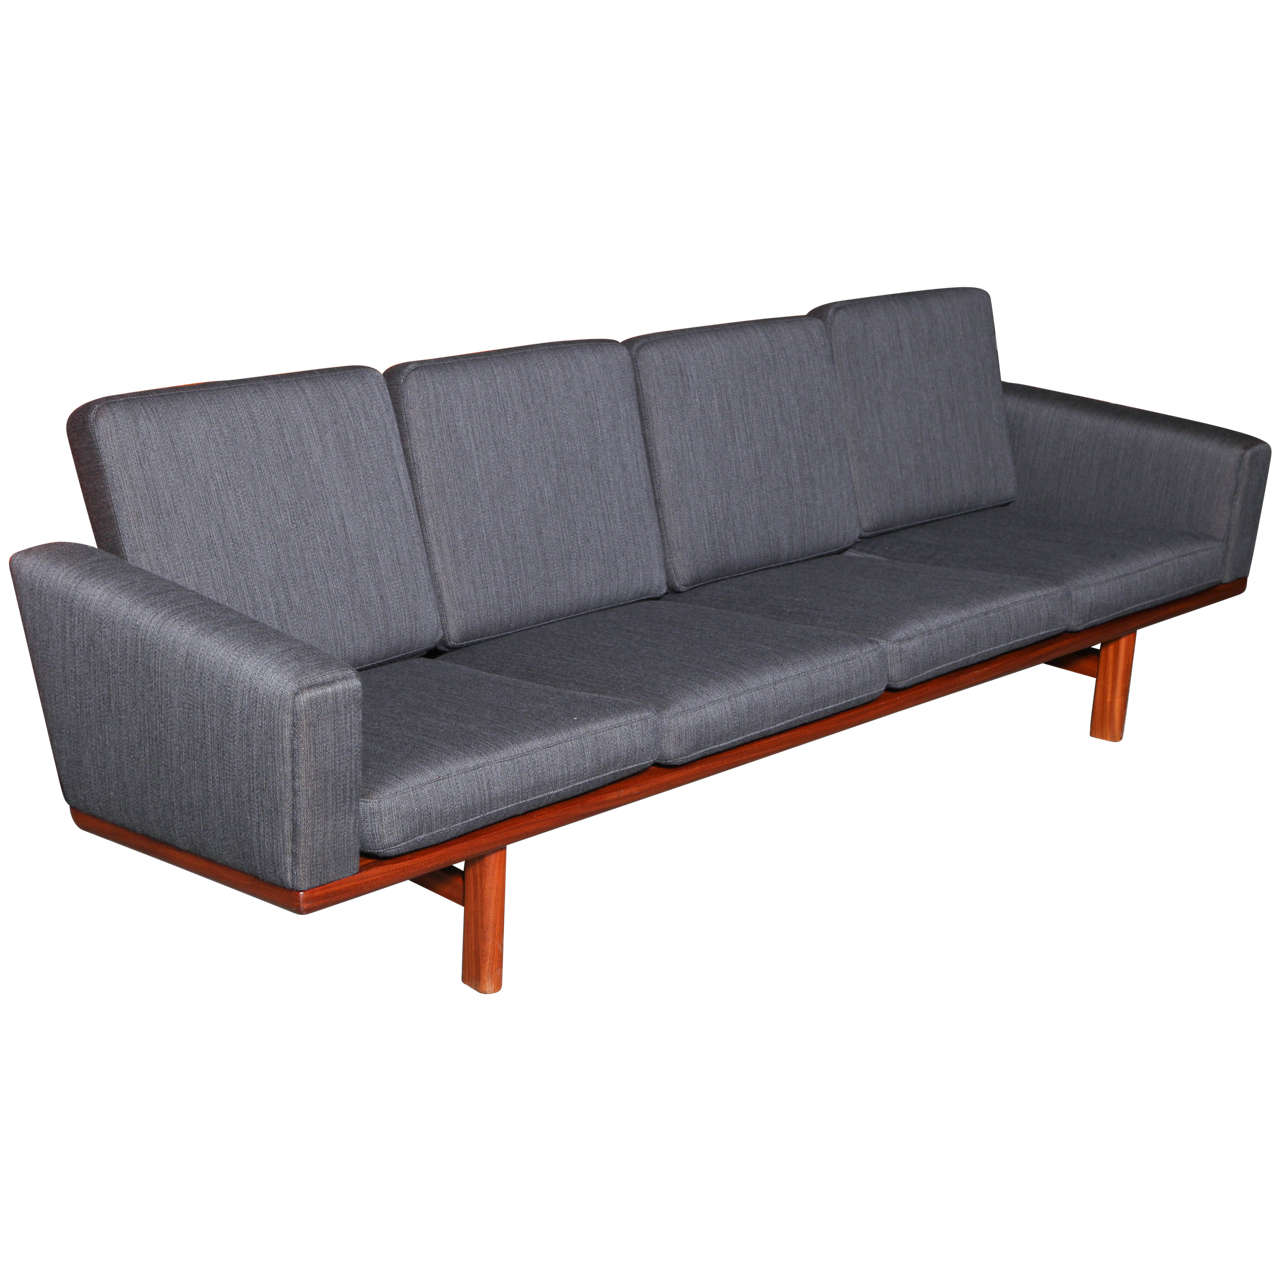 hans wegner ge 236 4 sofa at 1stdibs. Black Bedroom Furniture Sets. Home Design Ideas